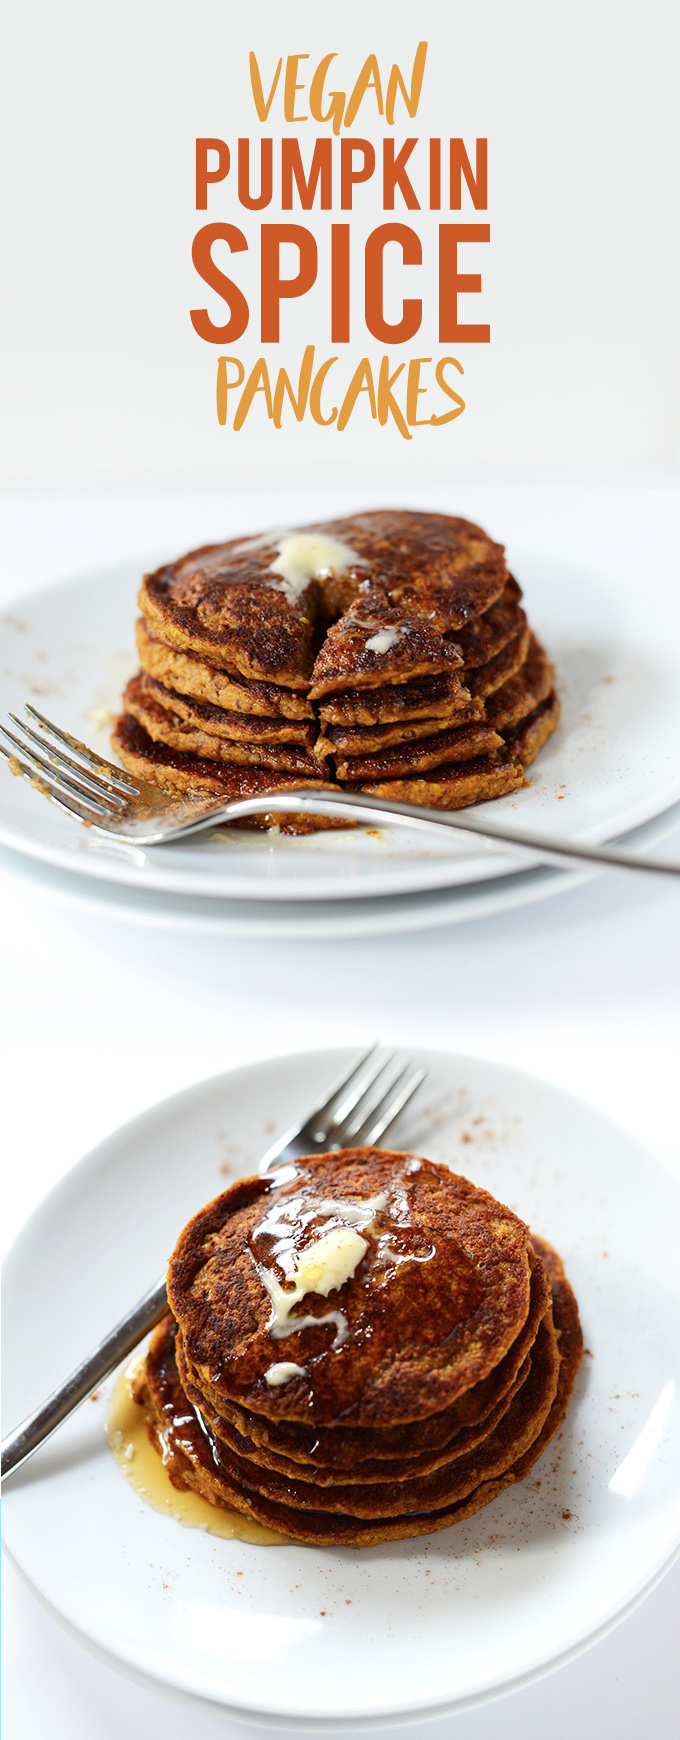 Moist Vegan Pumpkin Spice Pancakes stacked tall on plates